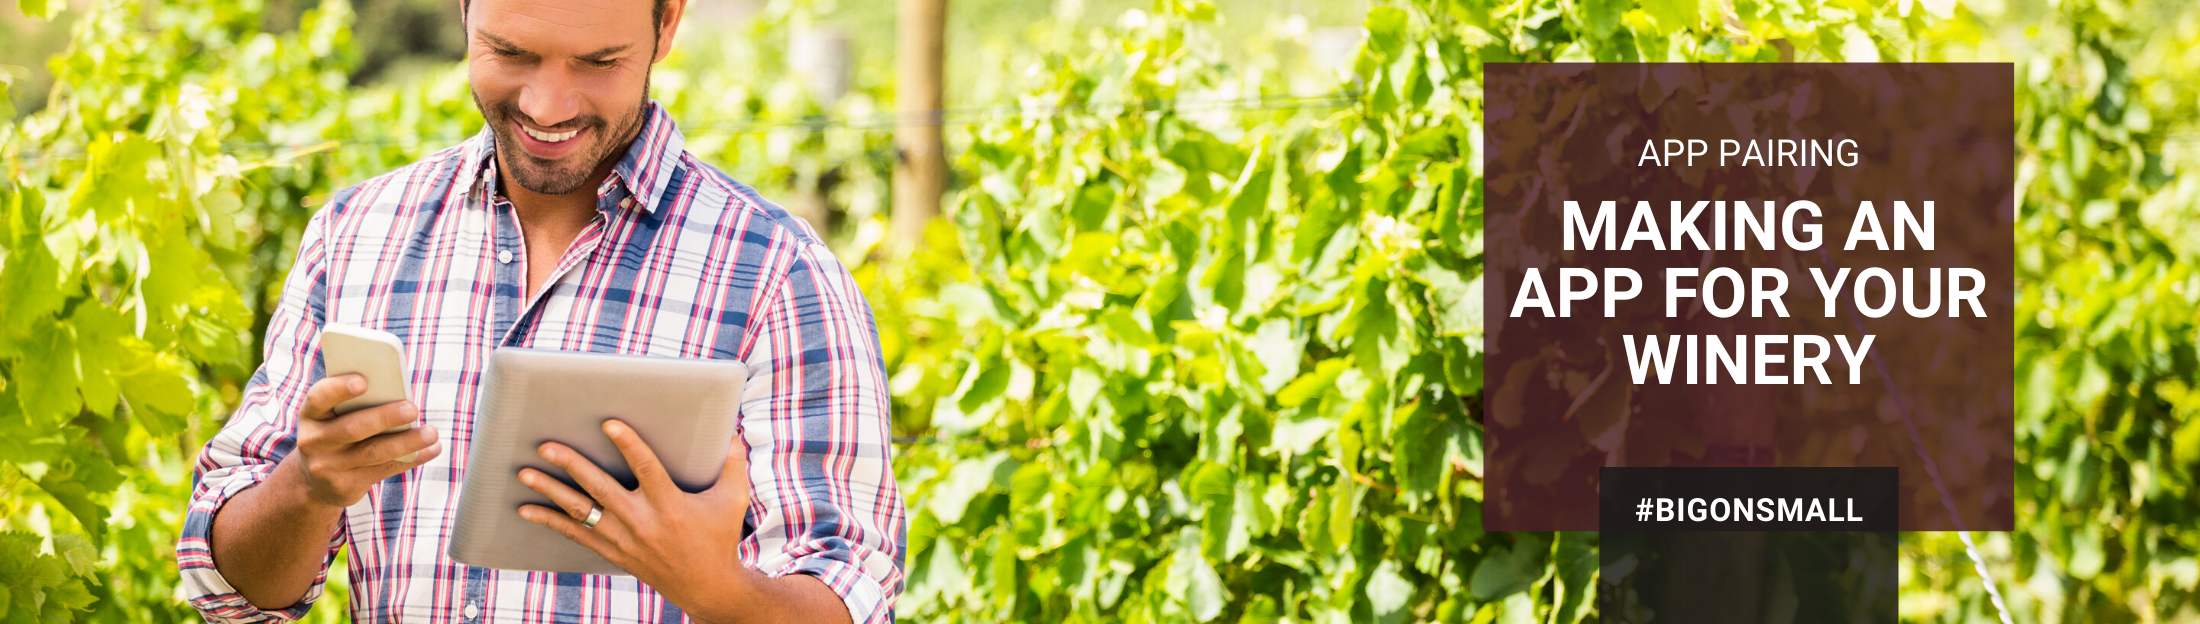 Dreaming of an app for your winery?